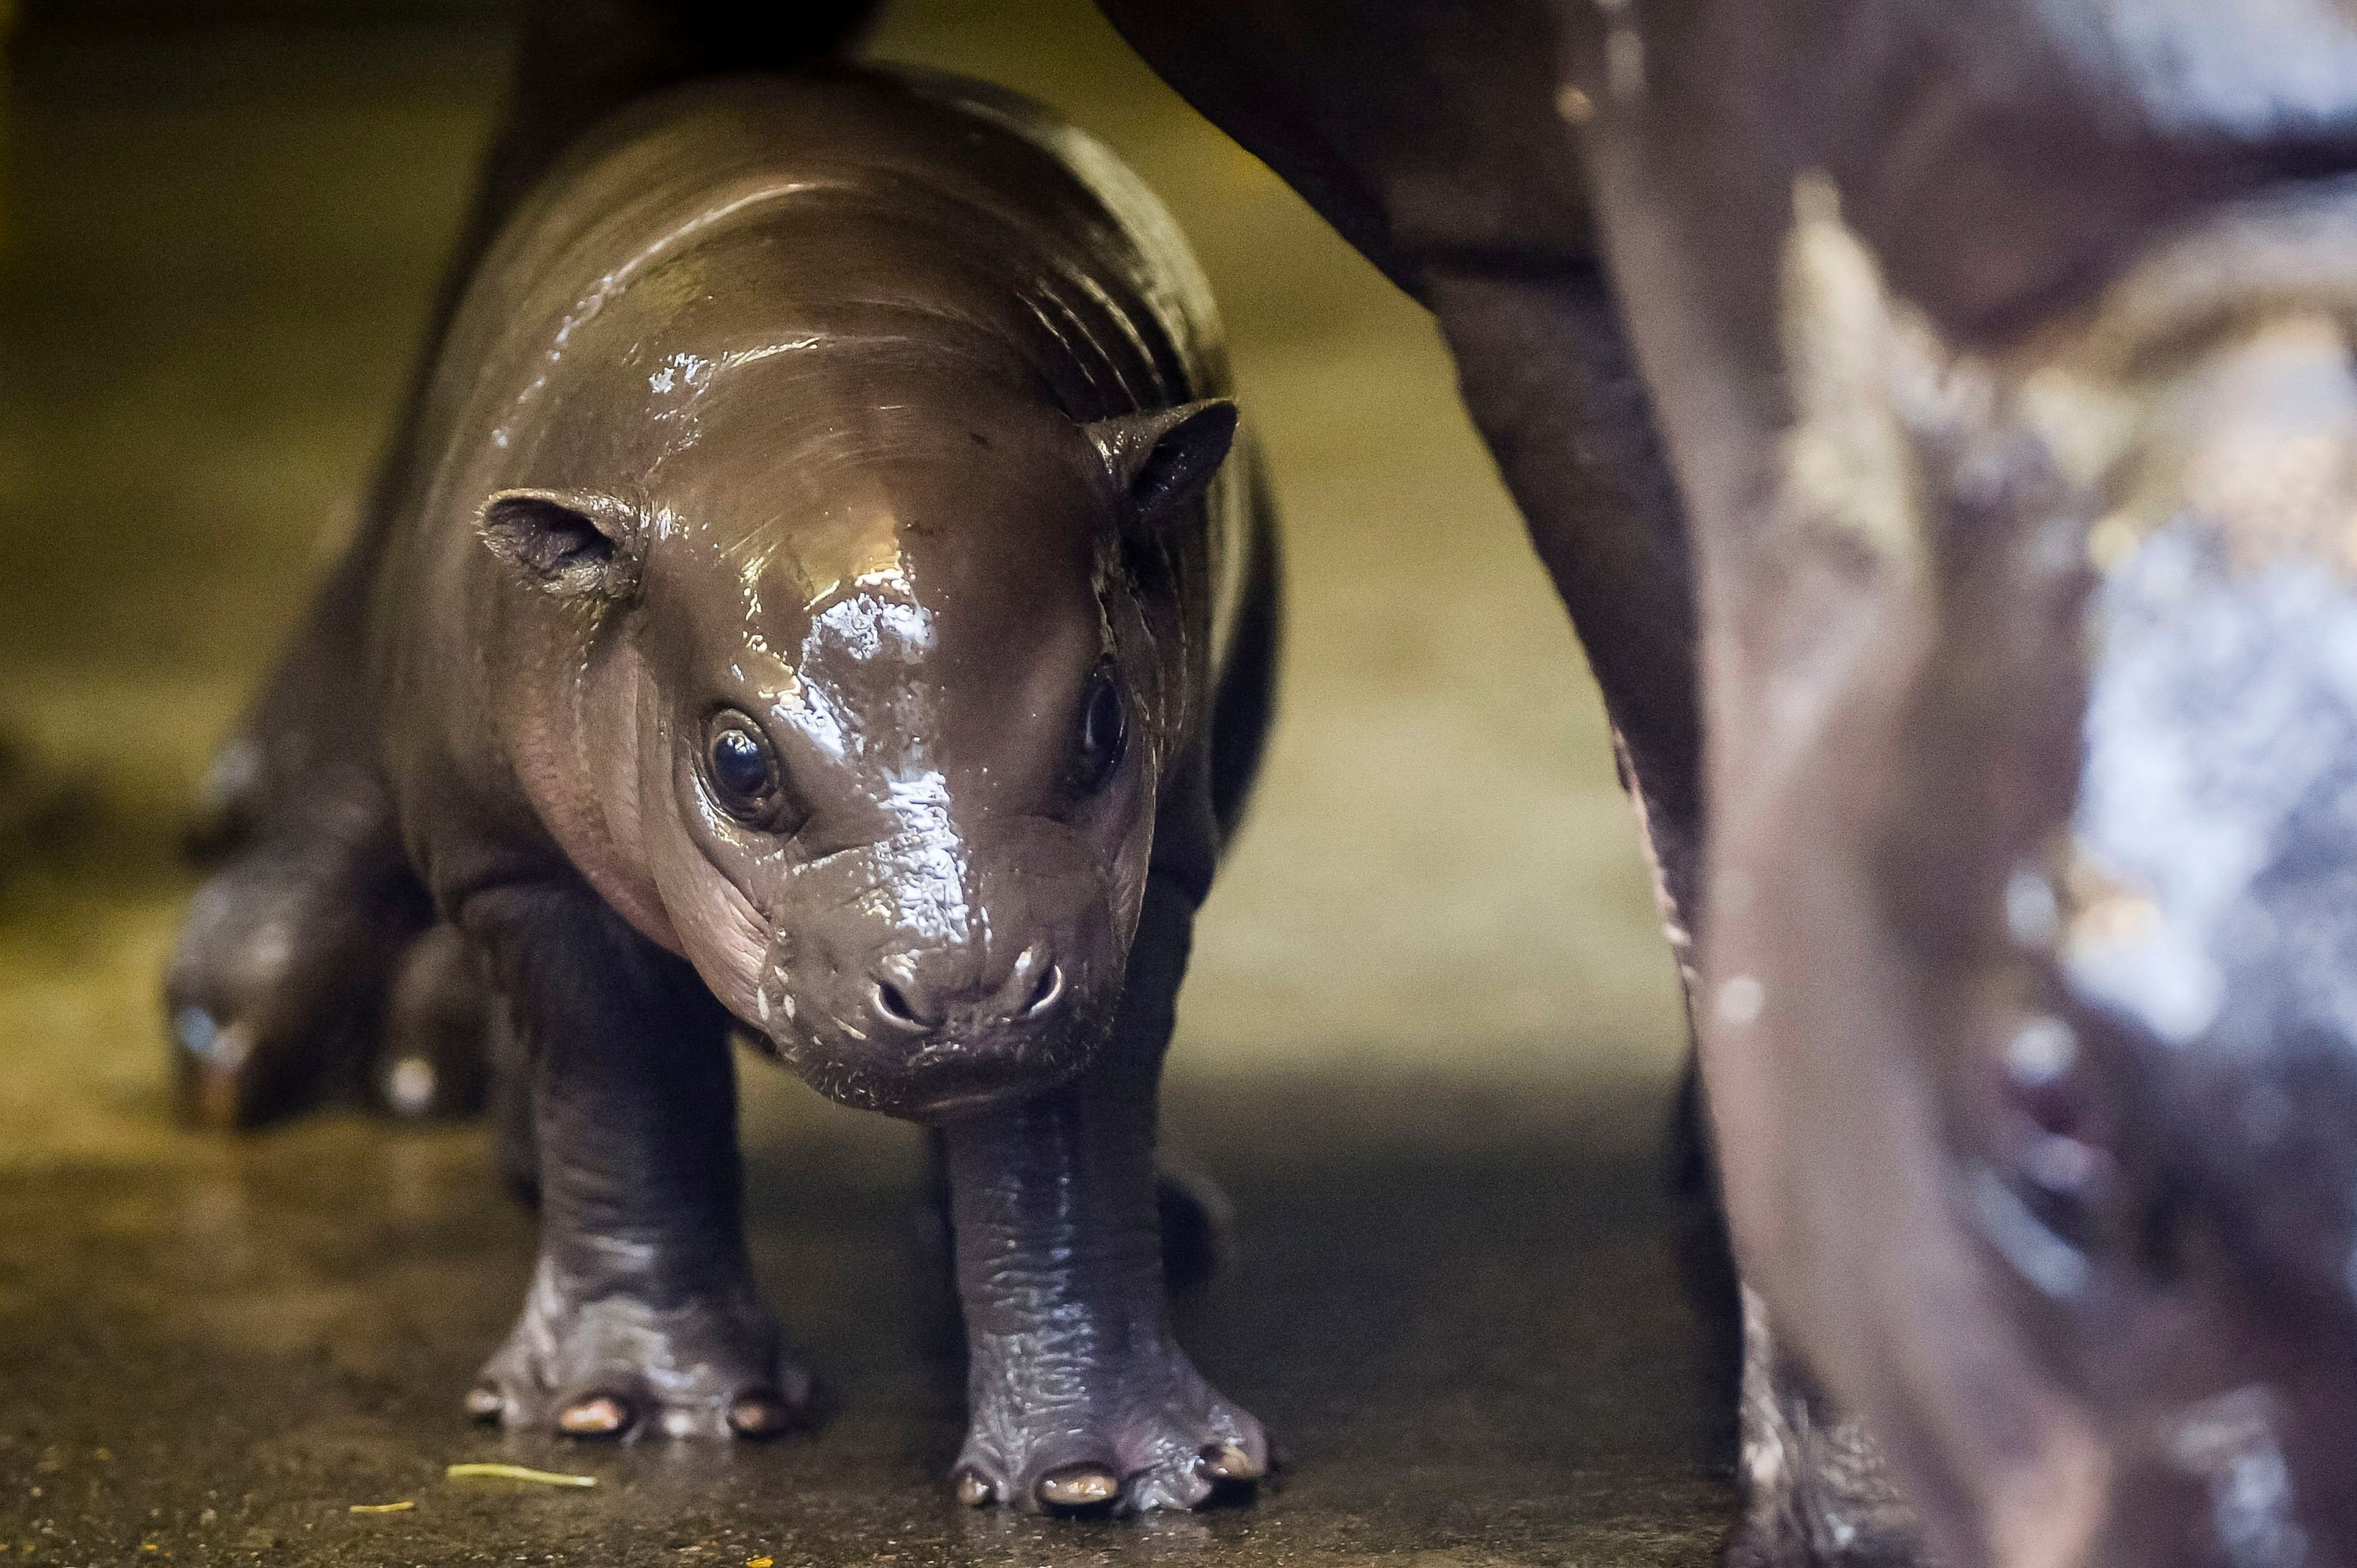 EMBARGOED TO 0001 FRIDAY NOVEMBER 20 An as of yet unnamed three-week-old baby pygmy hippopotamus calf stays close to its mother, Sirana's, legs as it explores Bristol Zoo's hippo house.